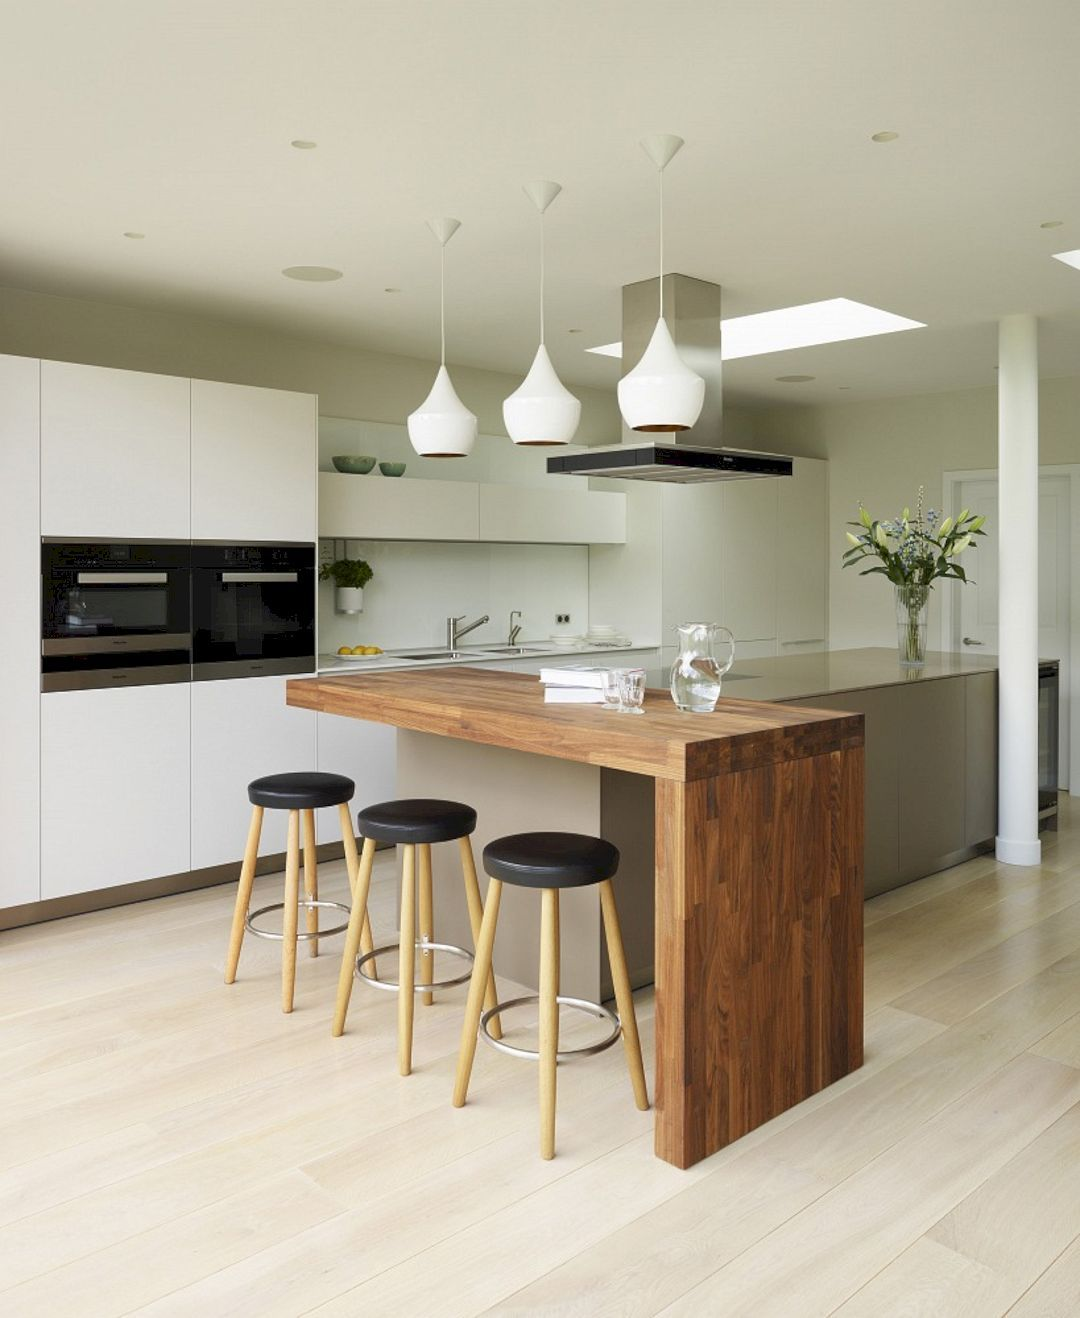 146 Amazing Small Kitchen Ideas that Perfect for Your Tiny Space ...